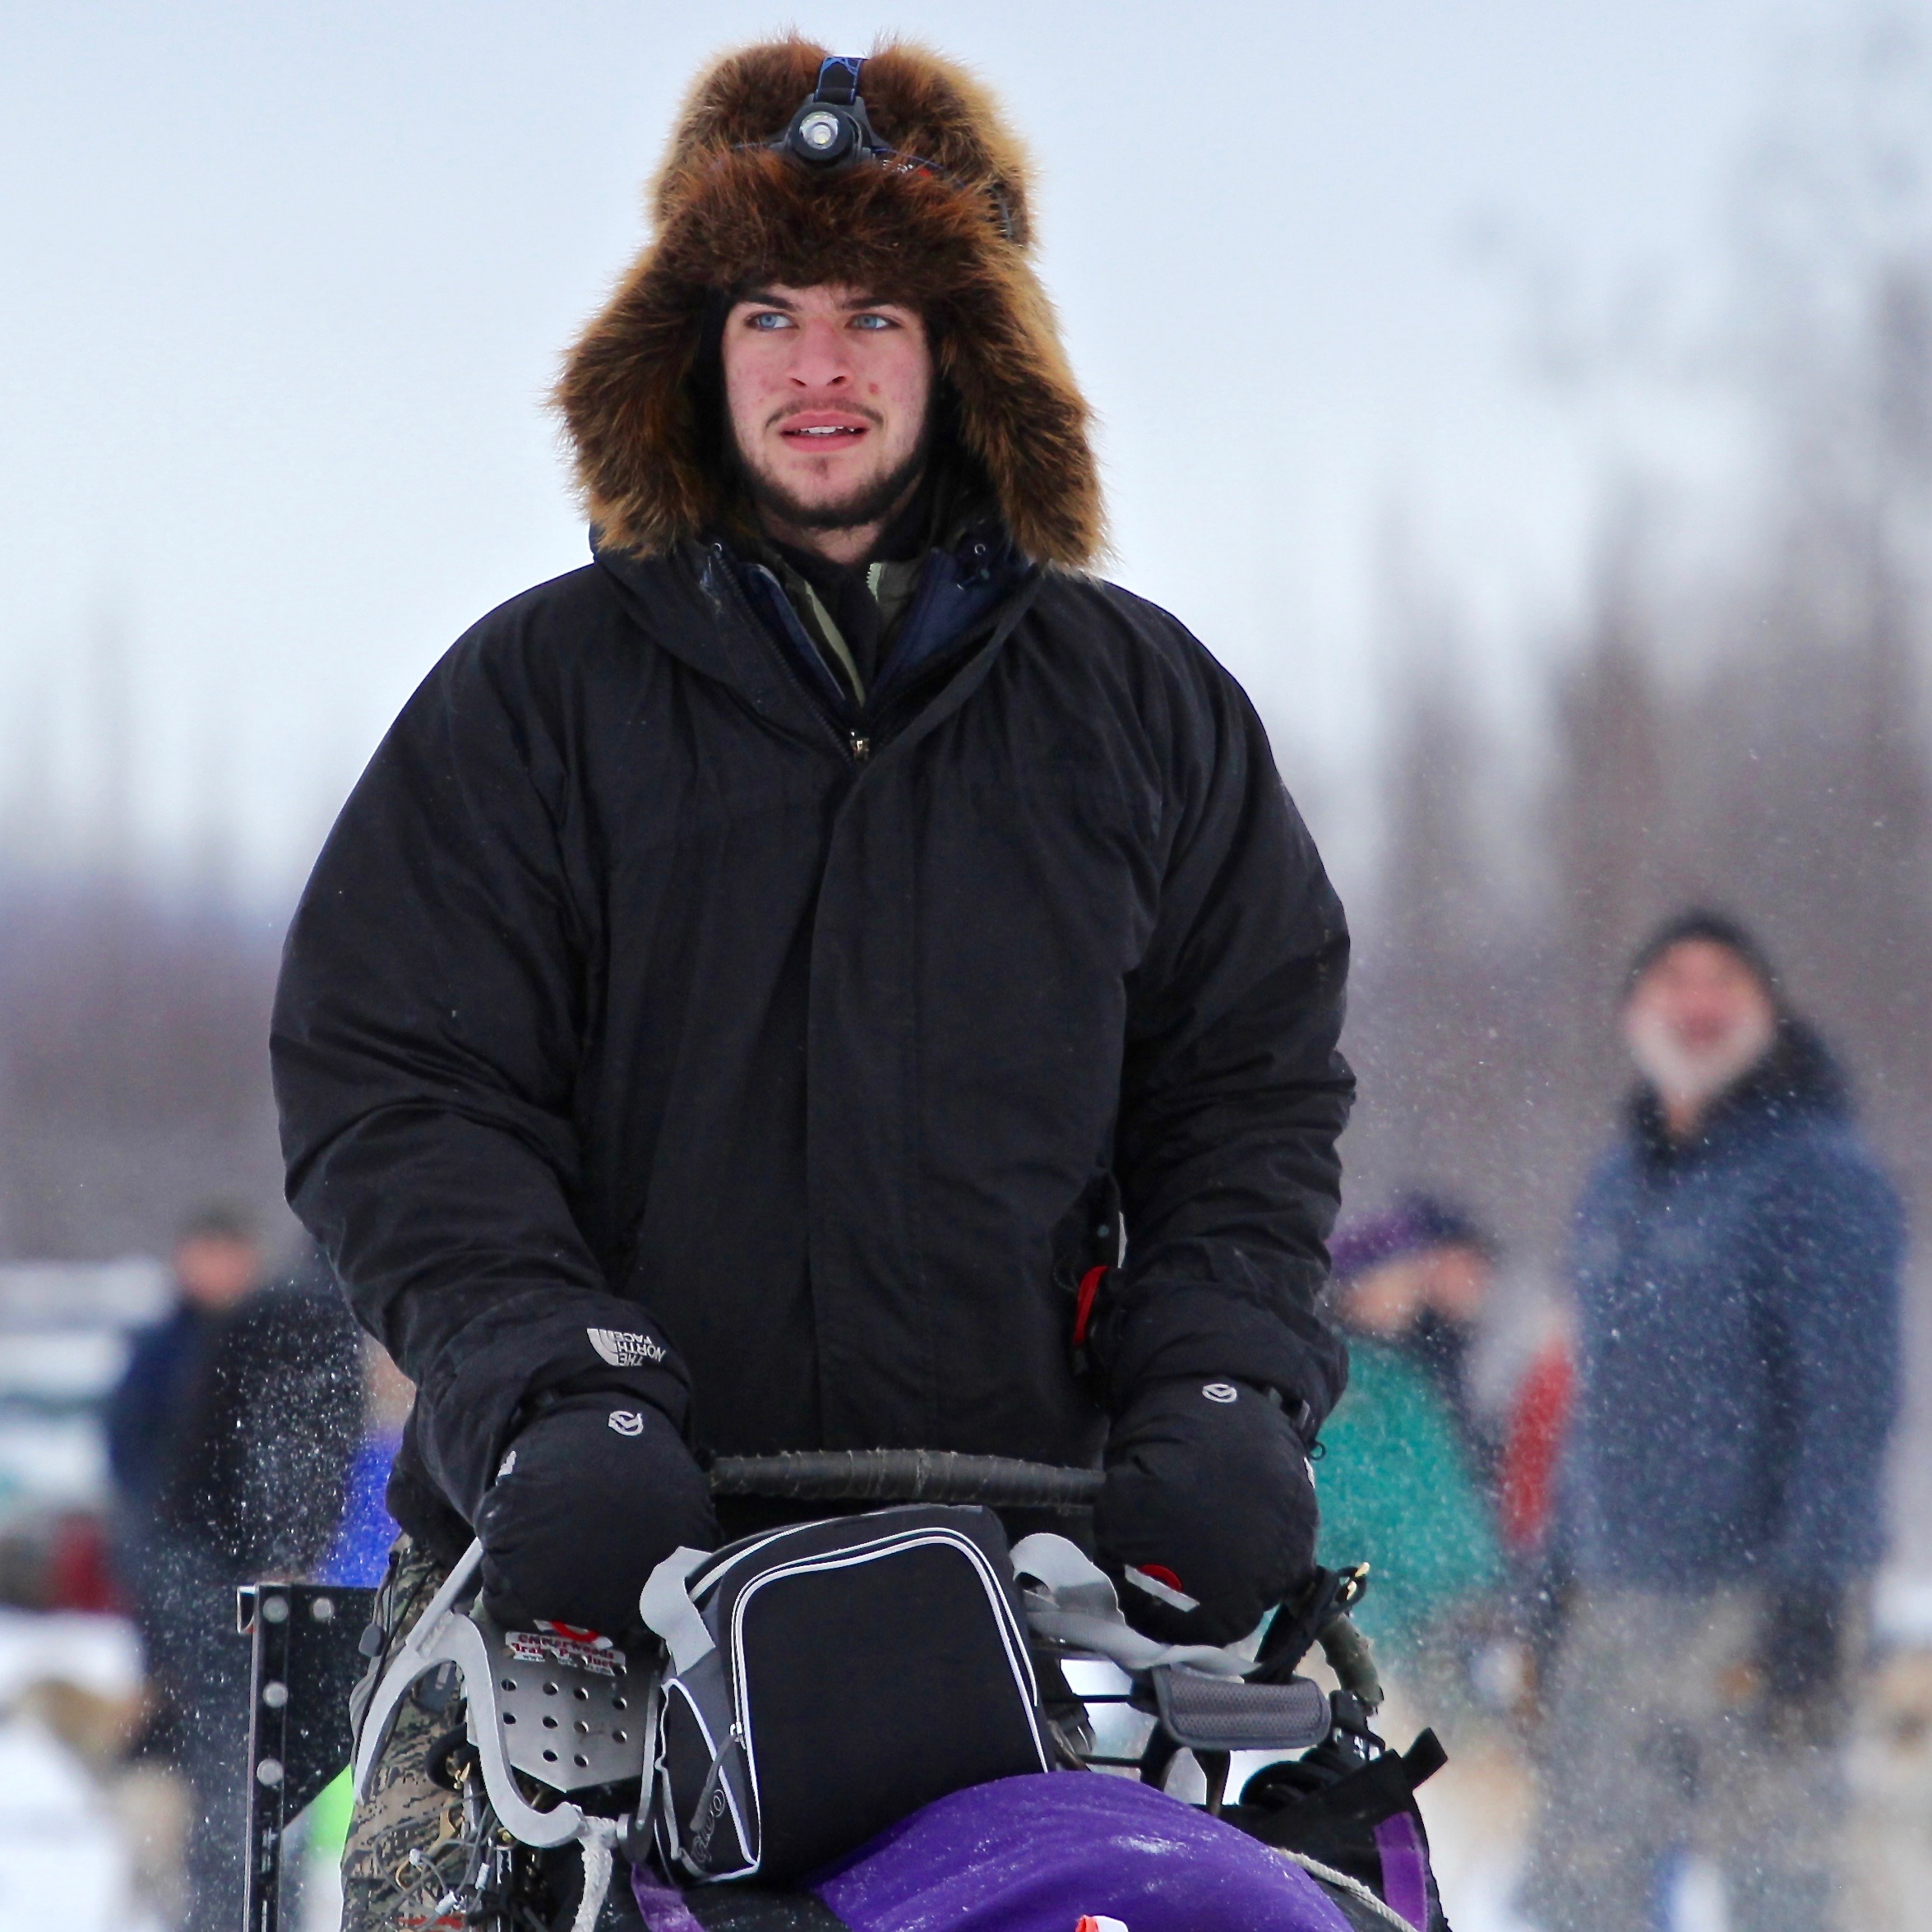 insider features paige drobny and noah pereira iditarod noah pereira at the start of 2015 northern lights 300